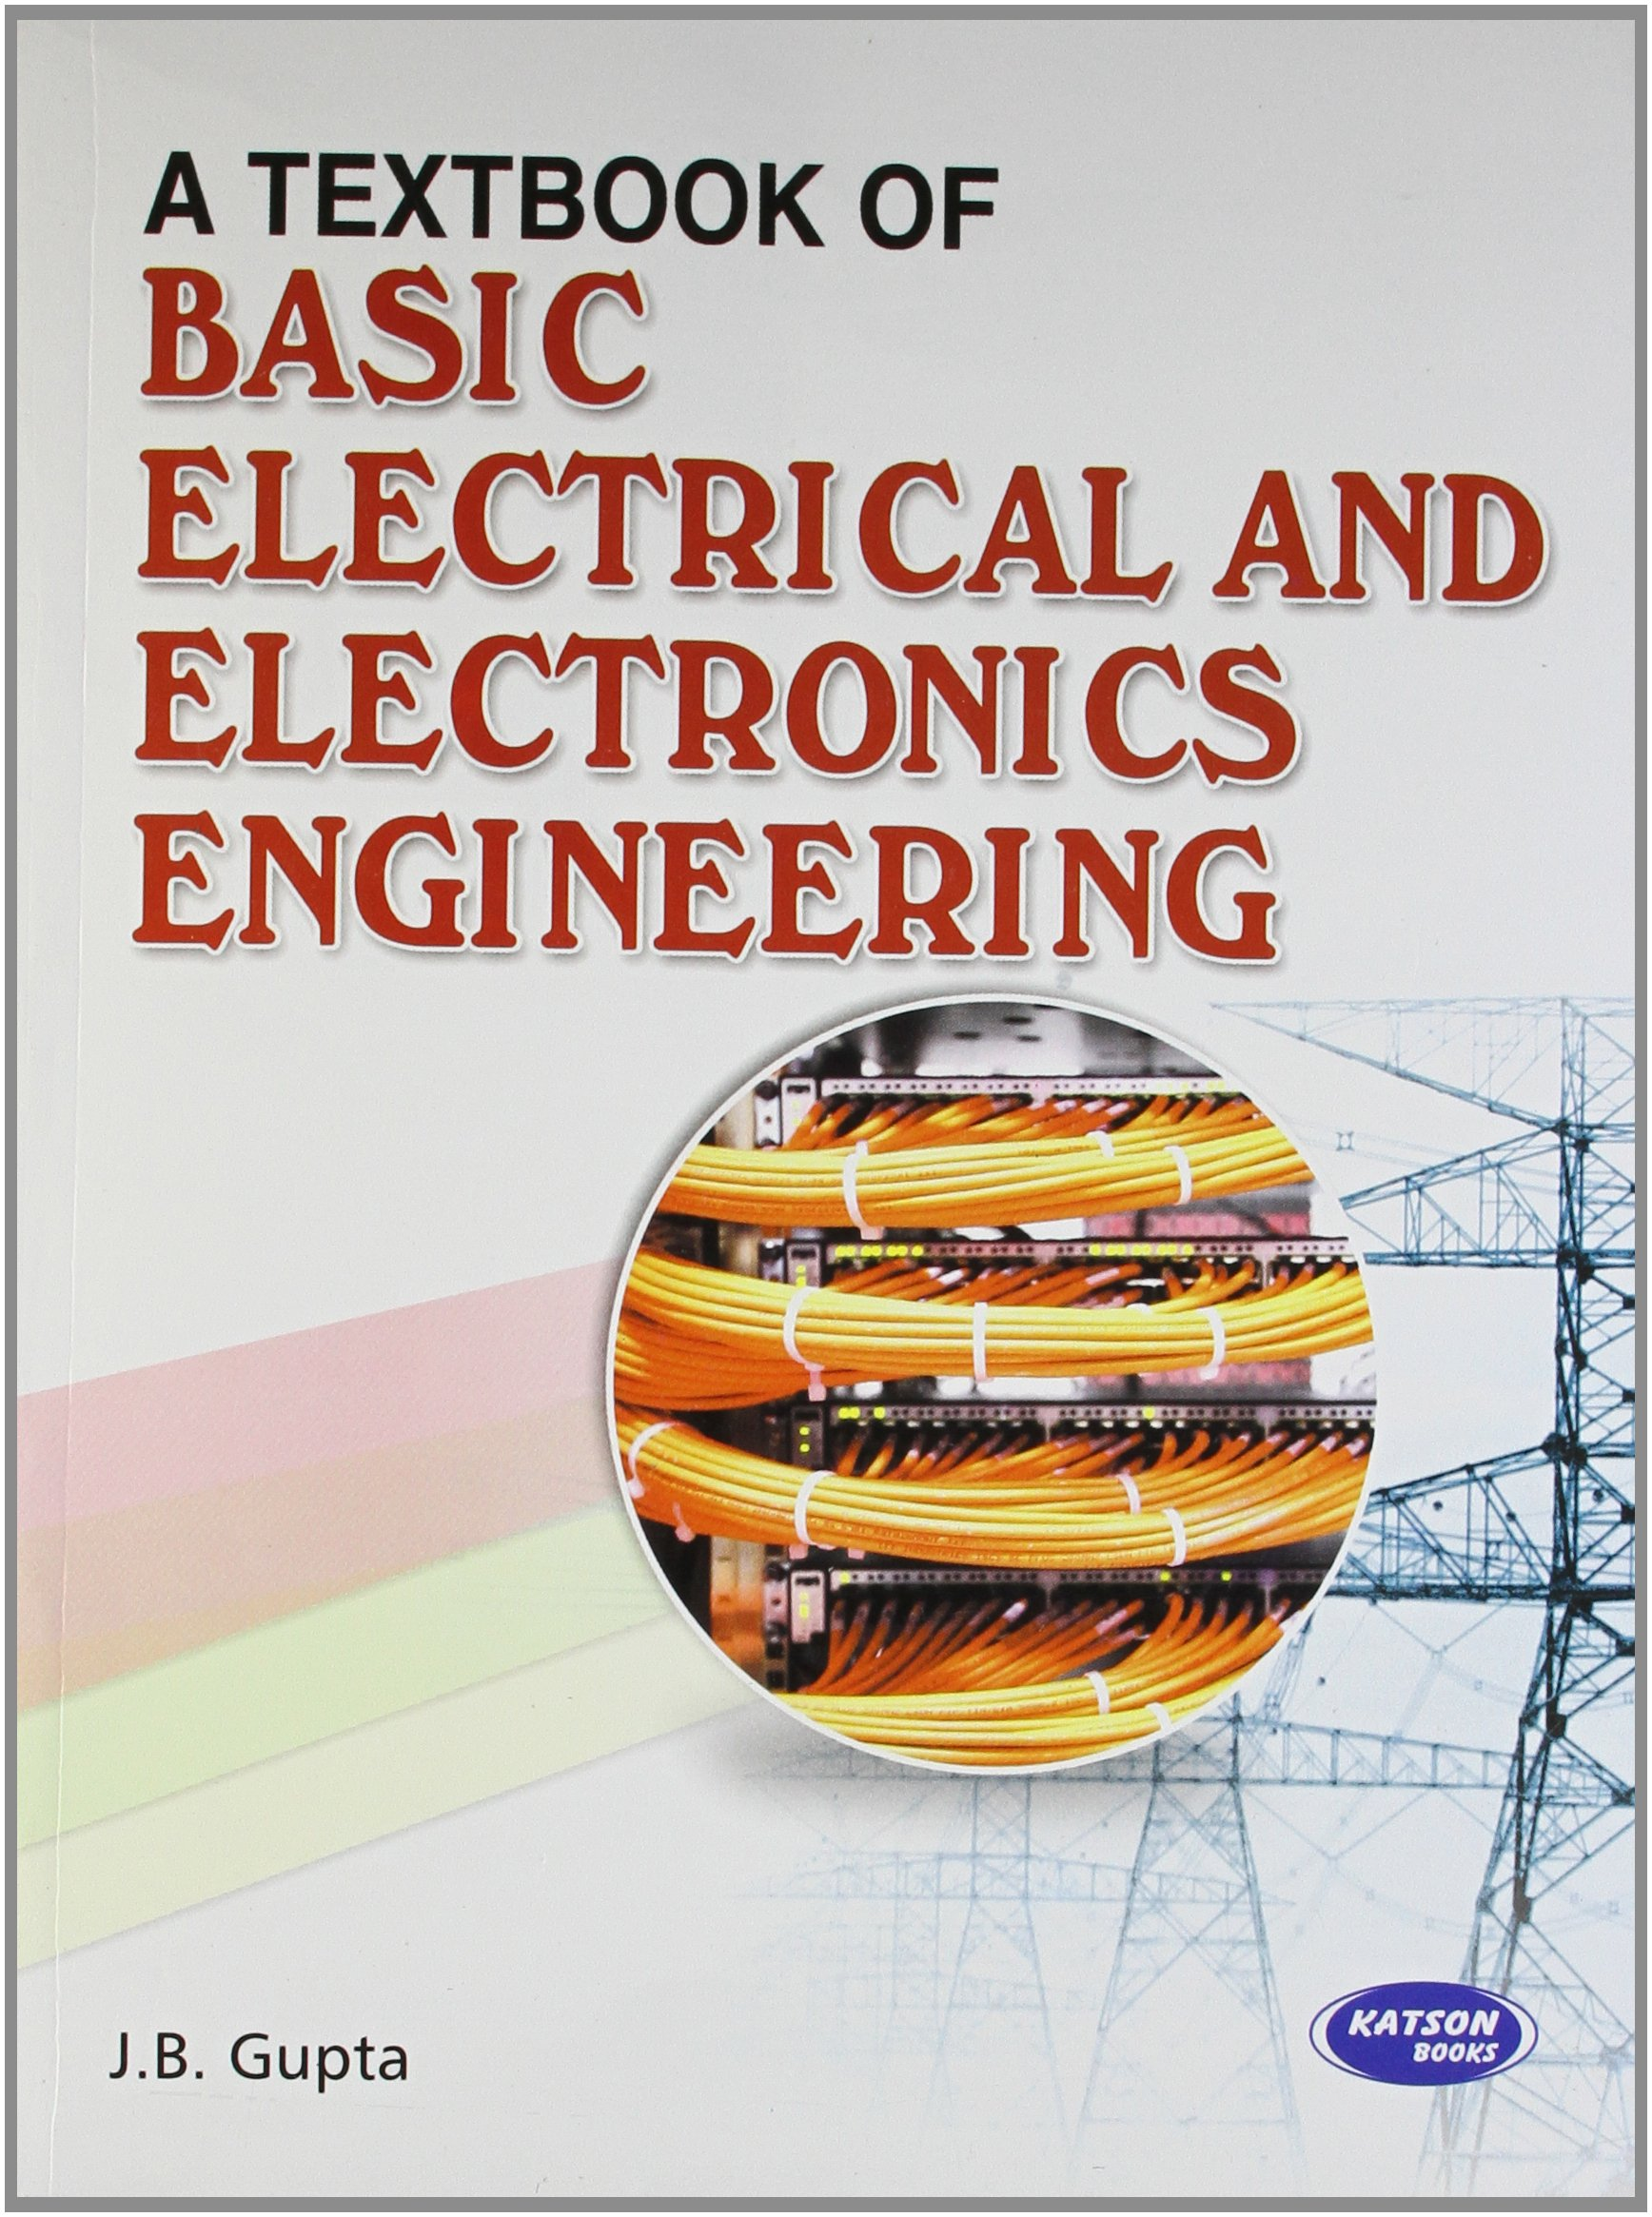 Buy A Textbook of Basic Electrical and Electronics